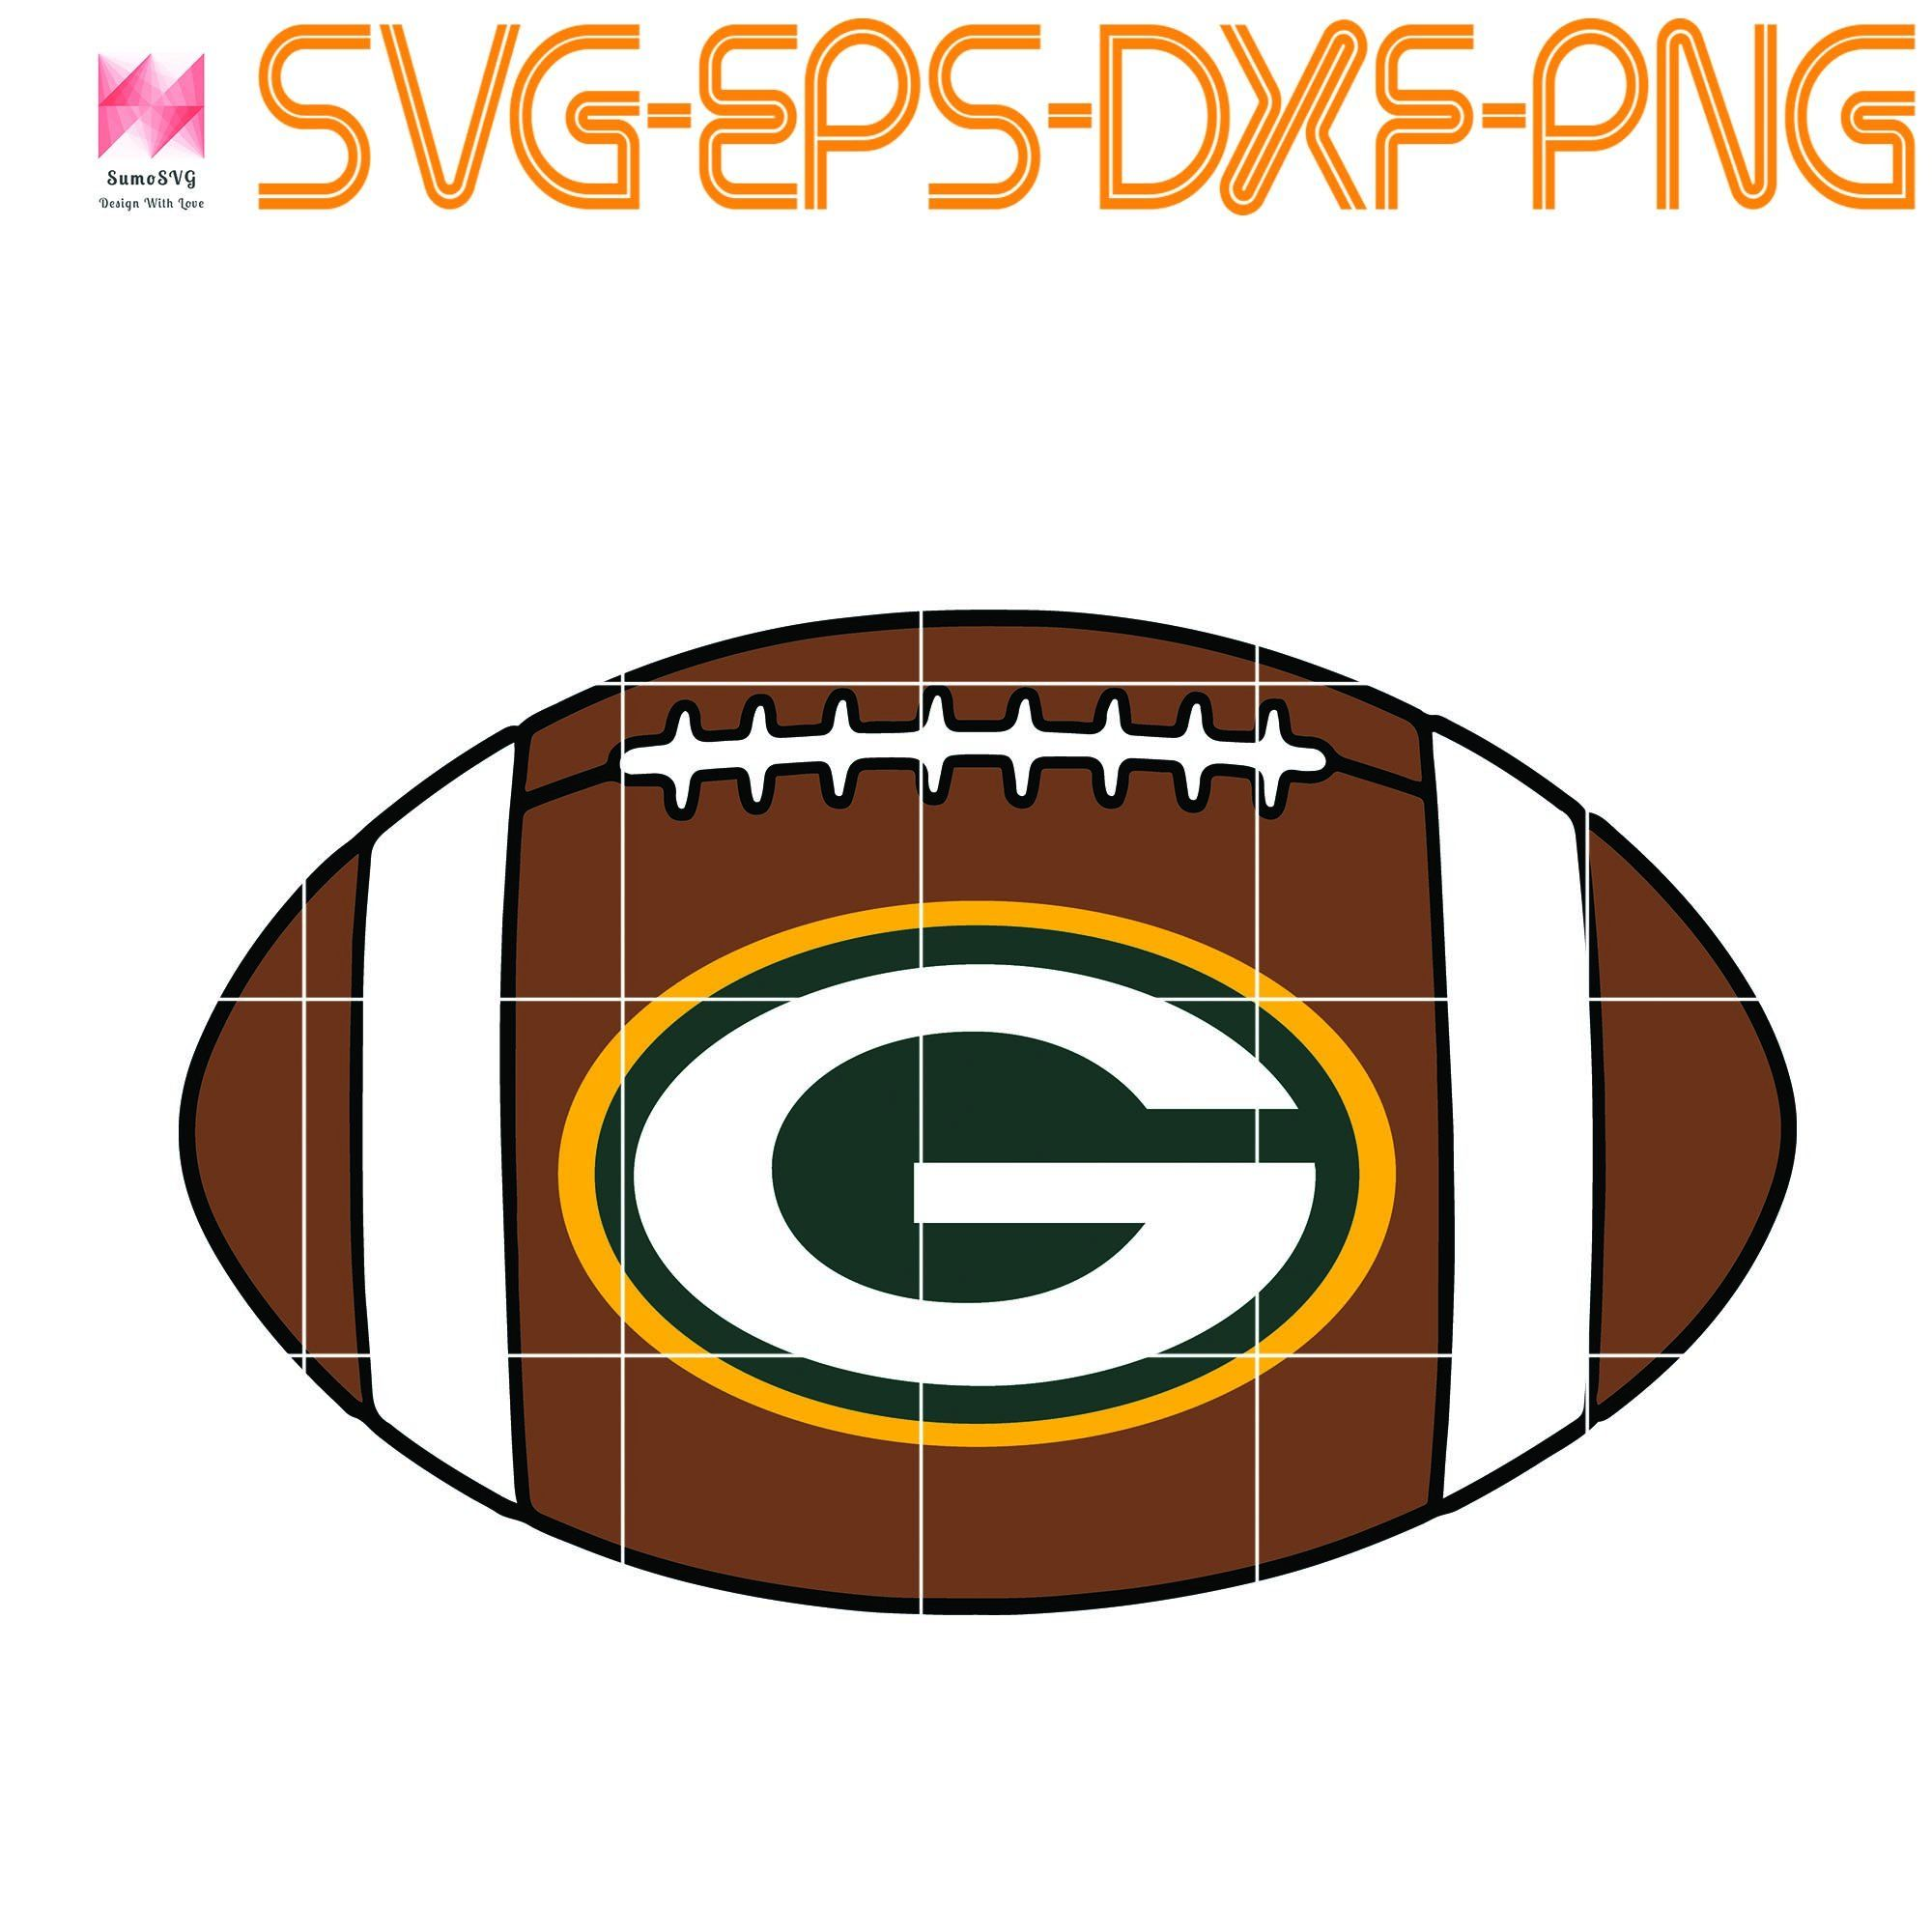 Green Bay Packers Svg Packers Svg Packers Girl Svg Packers Boy Svg Packers Mom Svg Nfl Svg Football Svg Dna Fueled By Haters Lip Skull Svg Eps Dxf In 2020